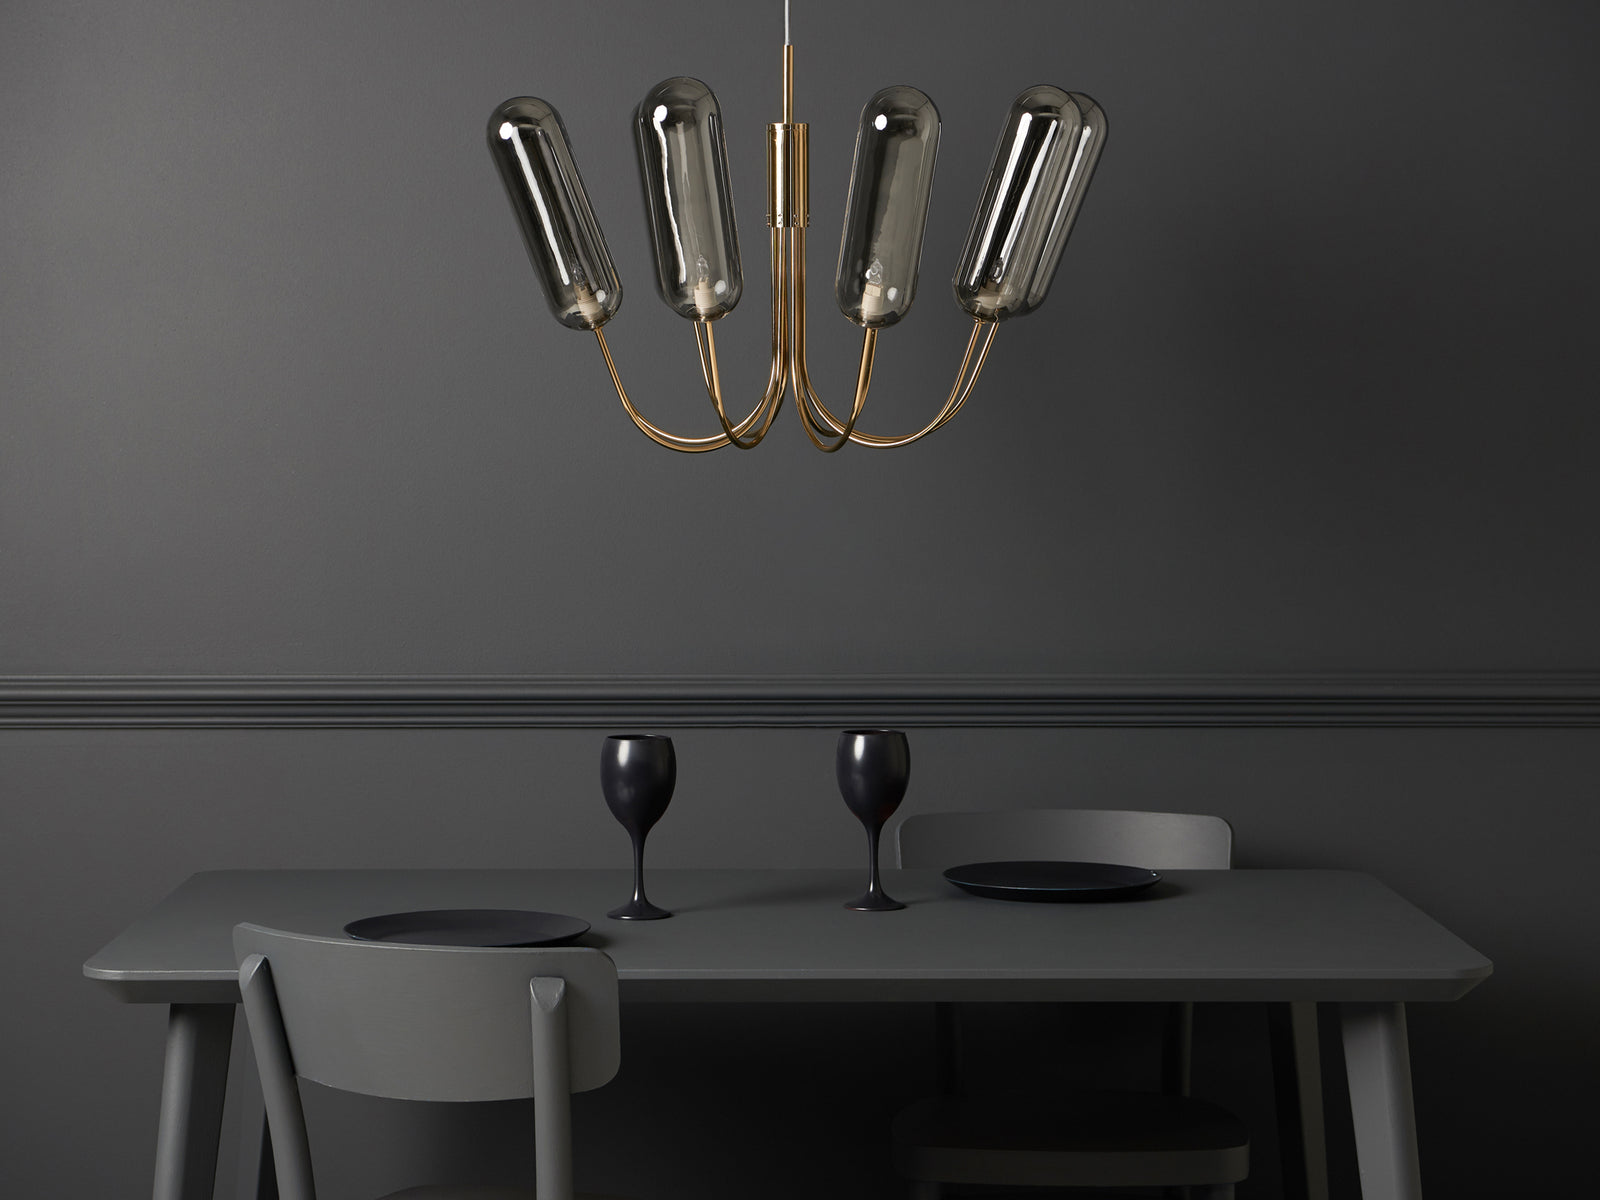 8 Light pill chandelier copper | context | houseof.com